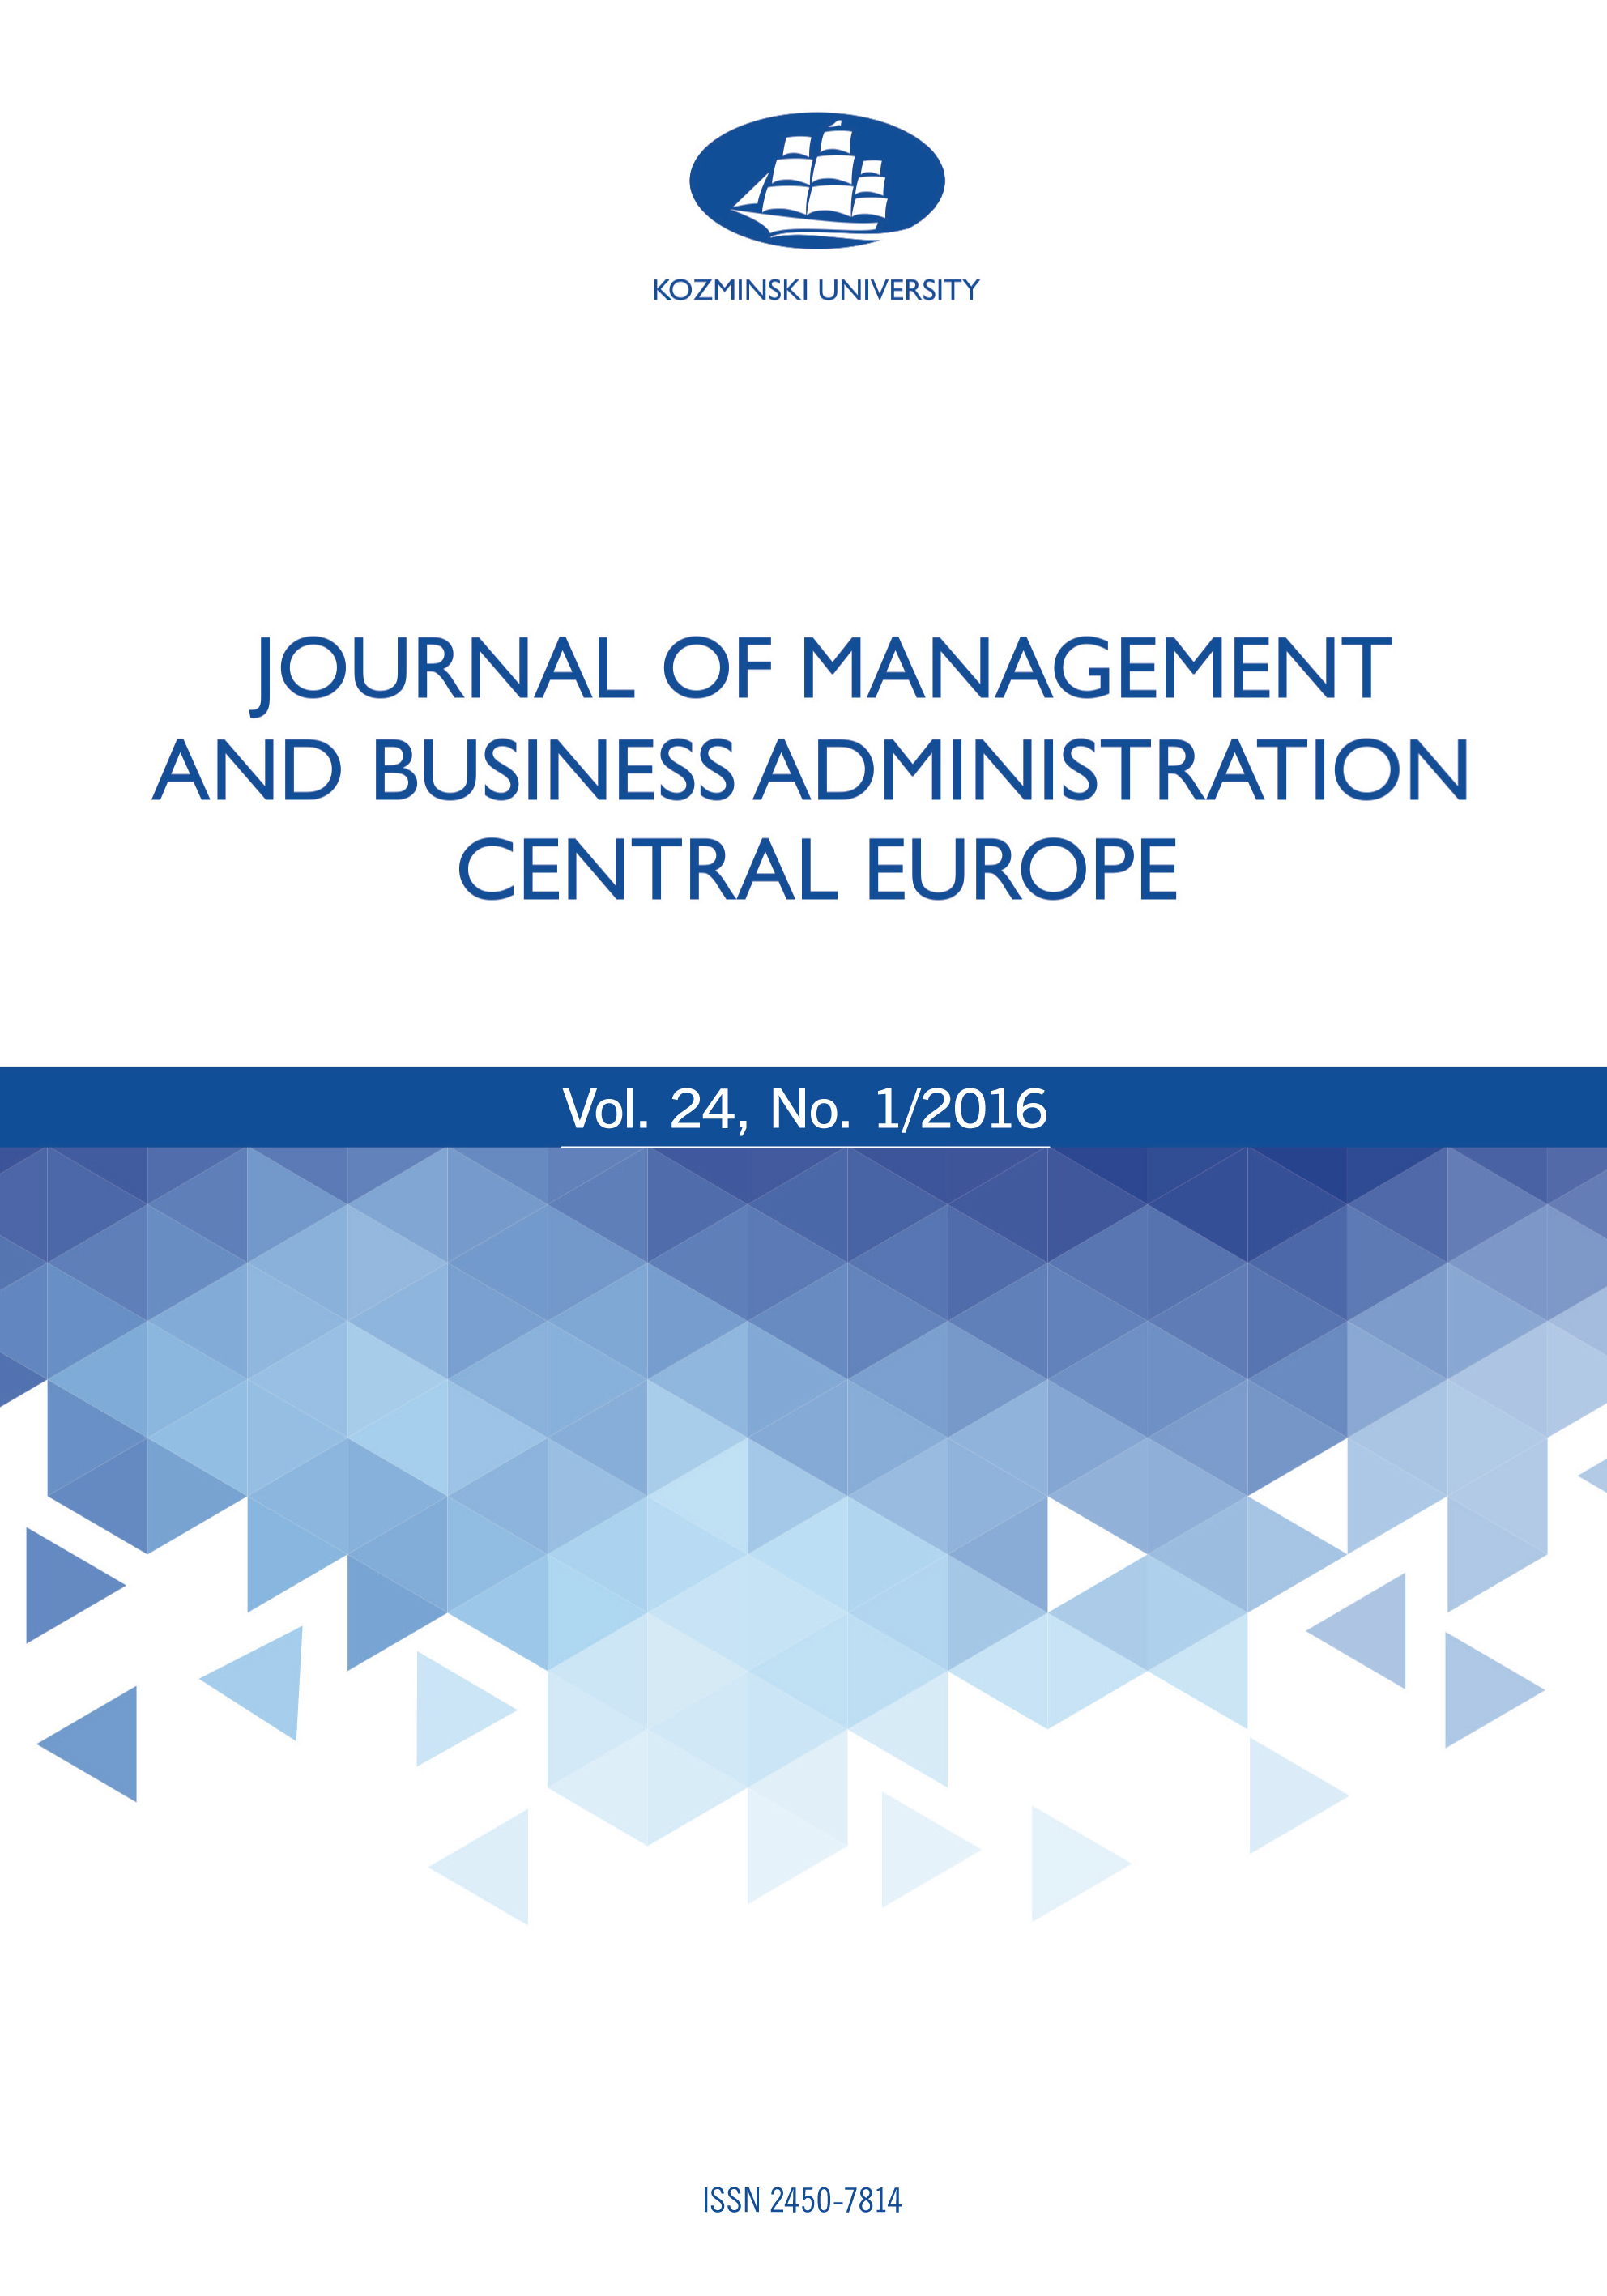 Journal of Management and Business Administration. Central Europe